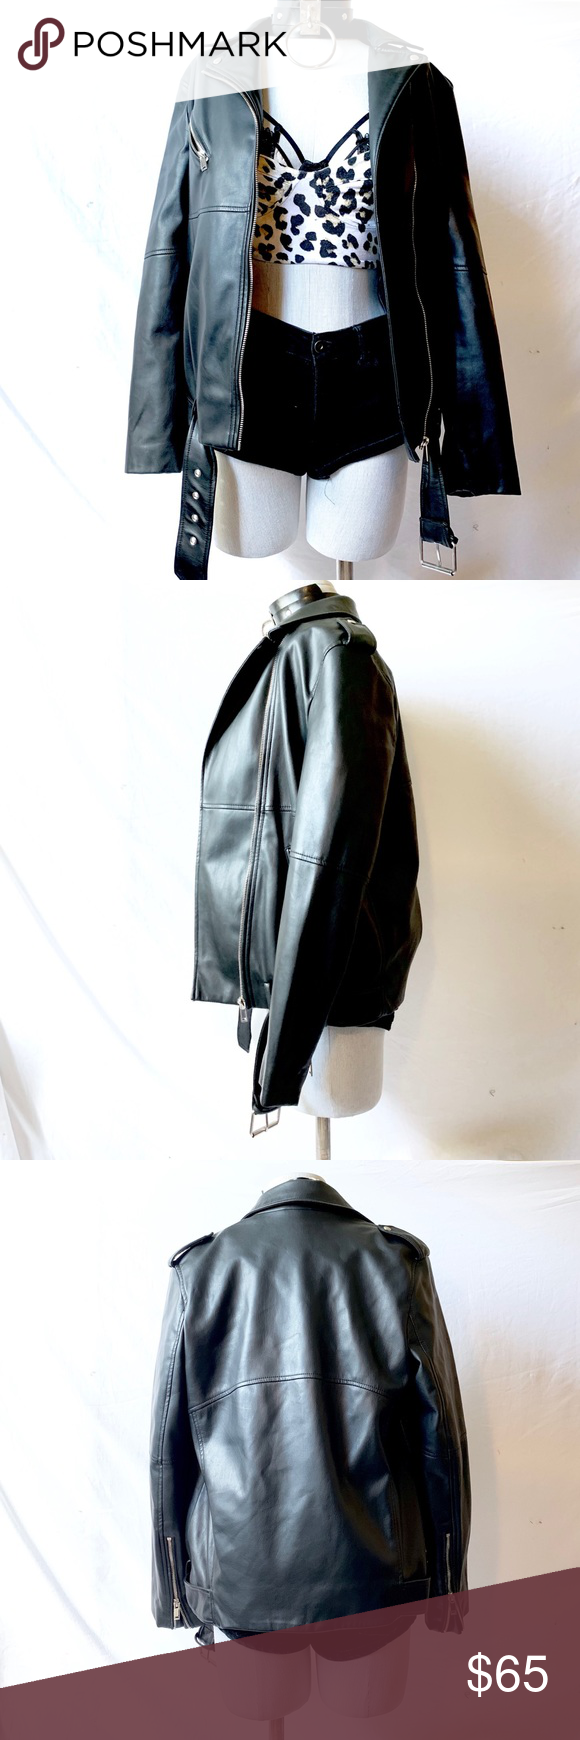 ♥️SALE♥️ Oversized Faux Leather Jacket Faux leather jackets